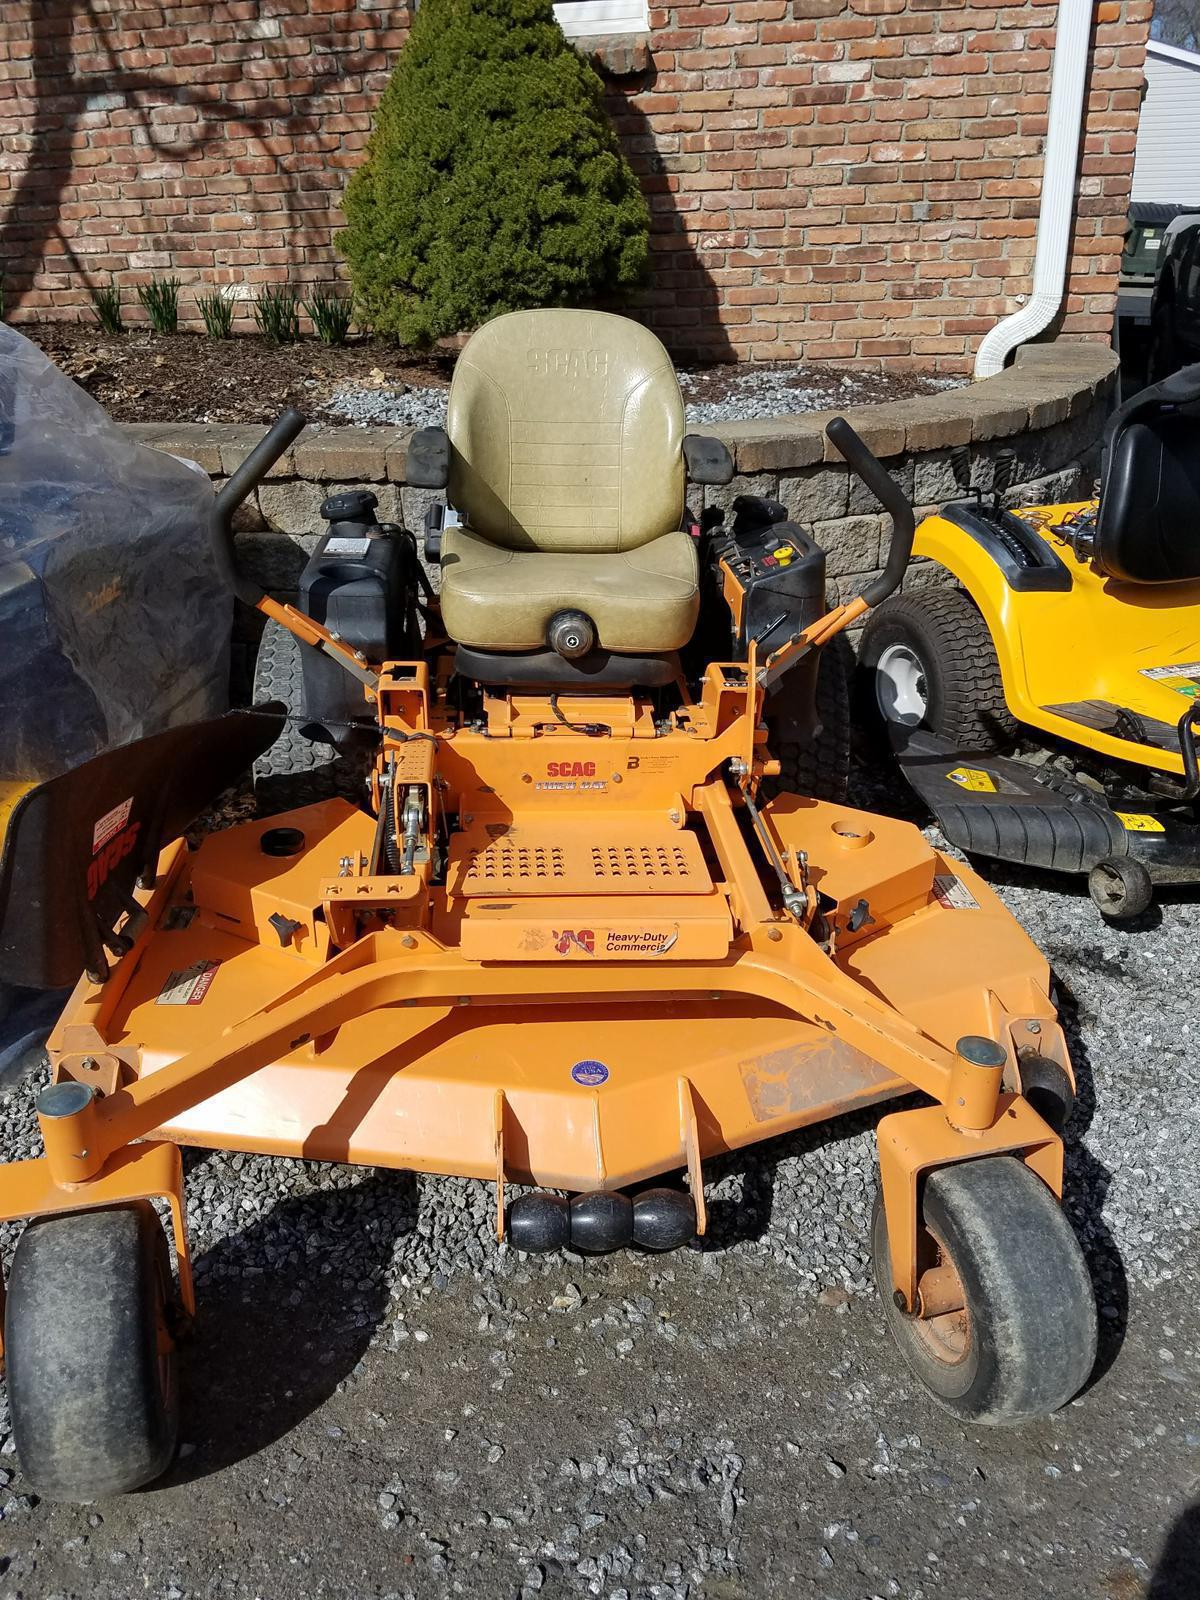 2013 Scag 61 Tiger Cat With 27 Hp Kohler Engine For Sale In Wiring Harness Stormville Ny Bradys Power Equipment Inc 845 221 0222